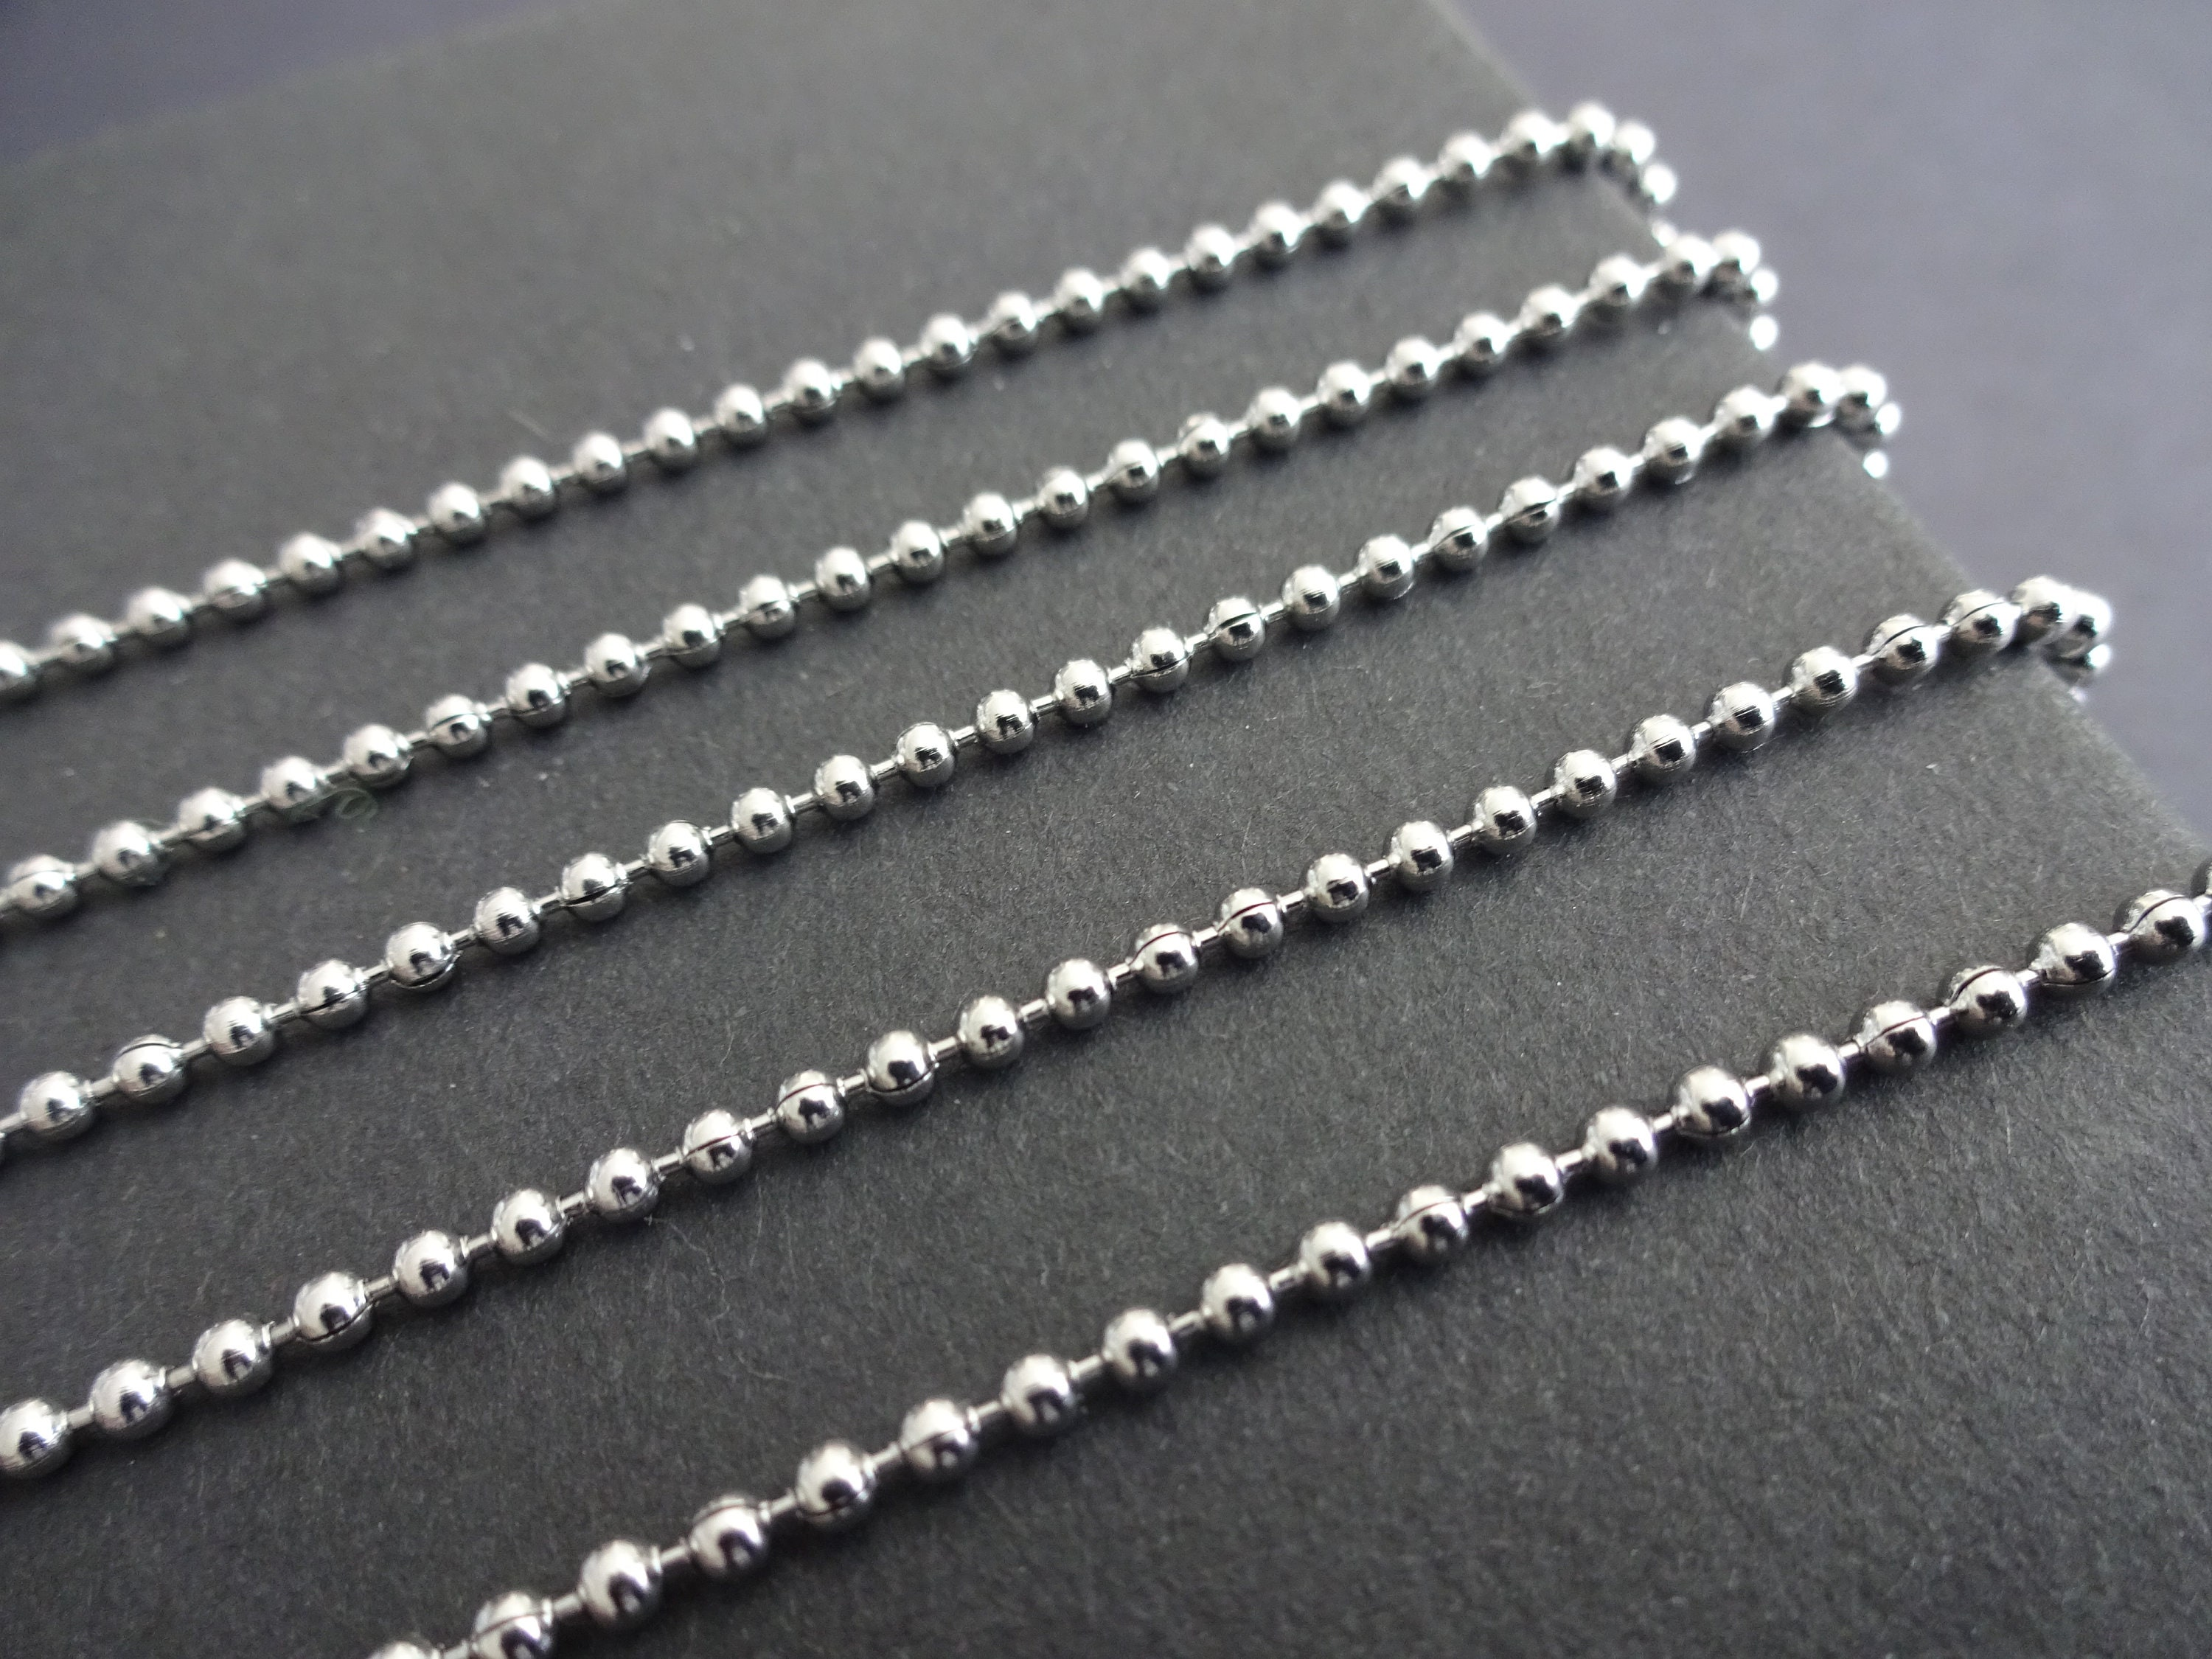 d14651dac1d73 50 Meters 304 Stainless Steel Ball Chain, Soldered, 2mm Chain Bulk ...